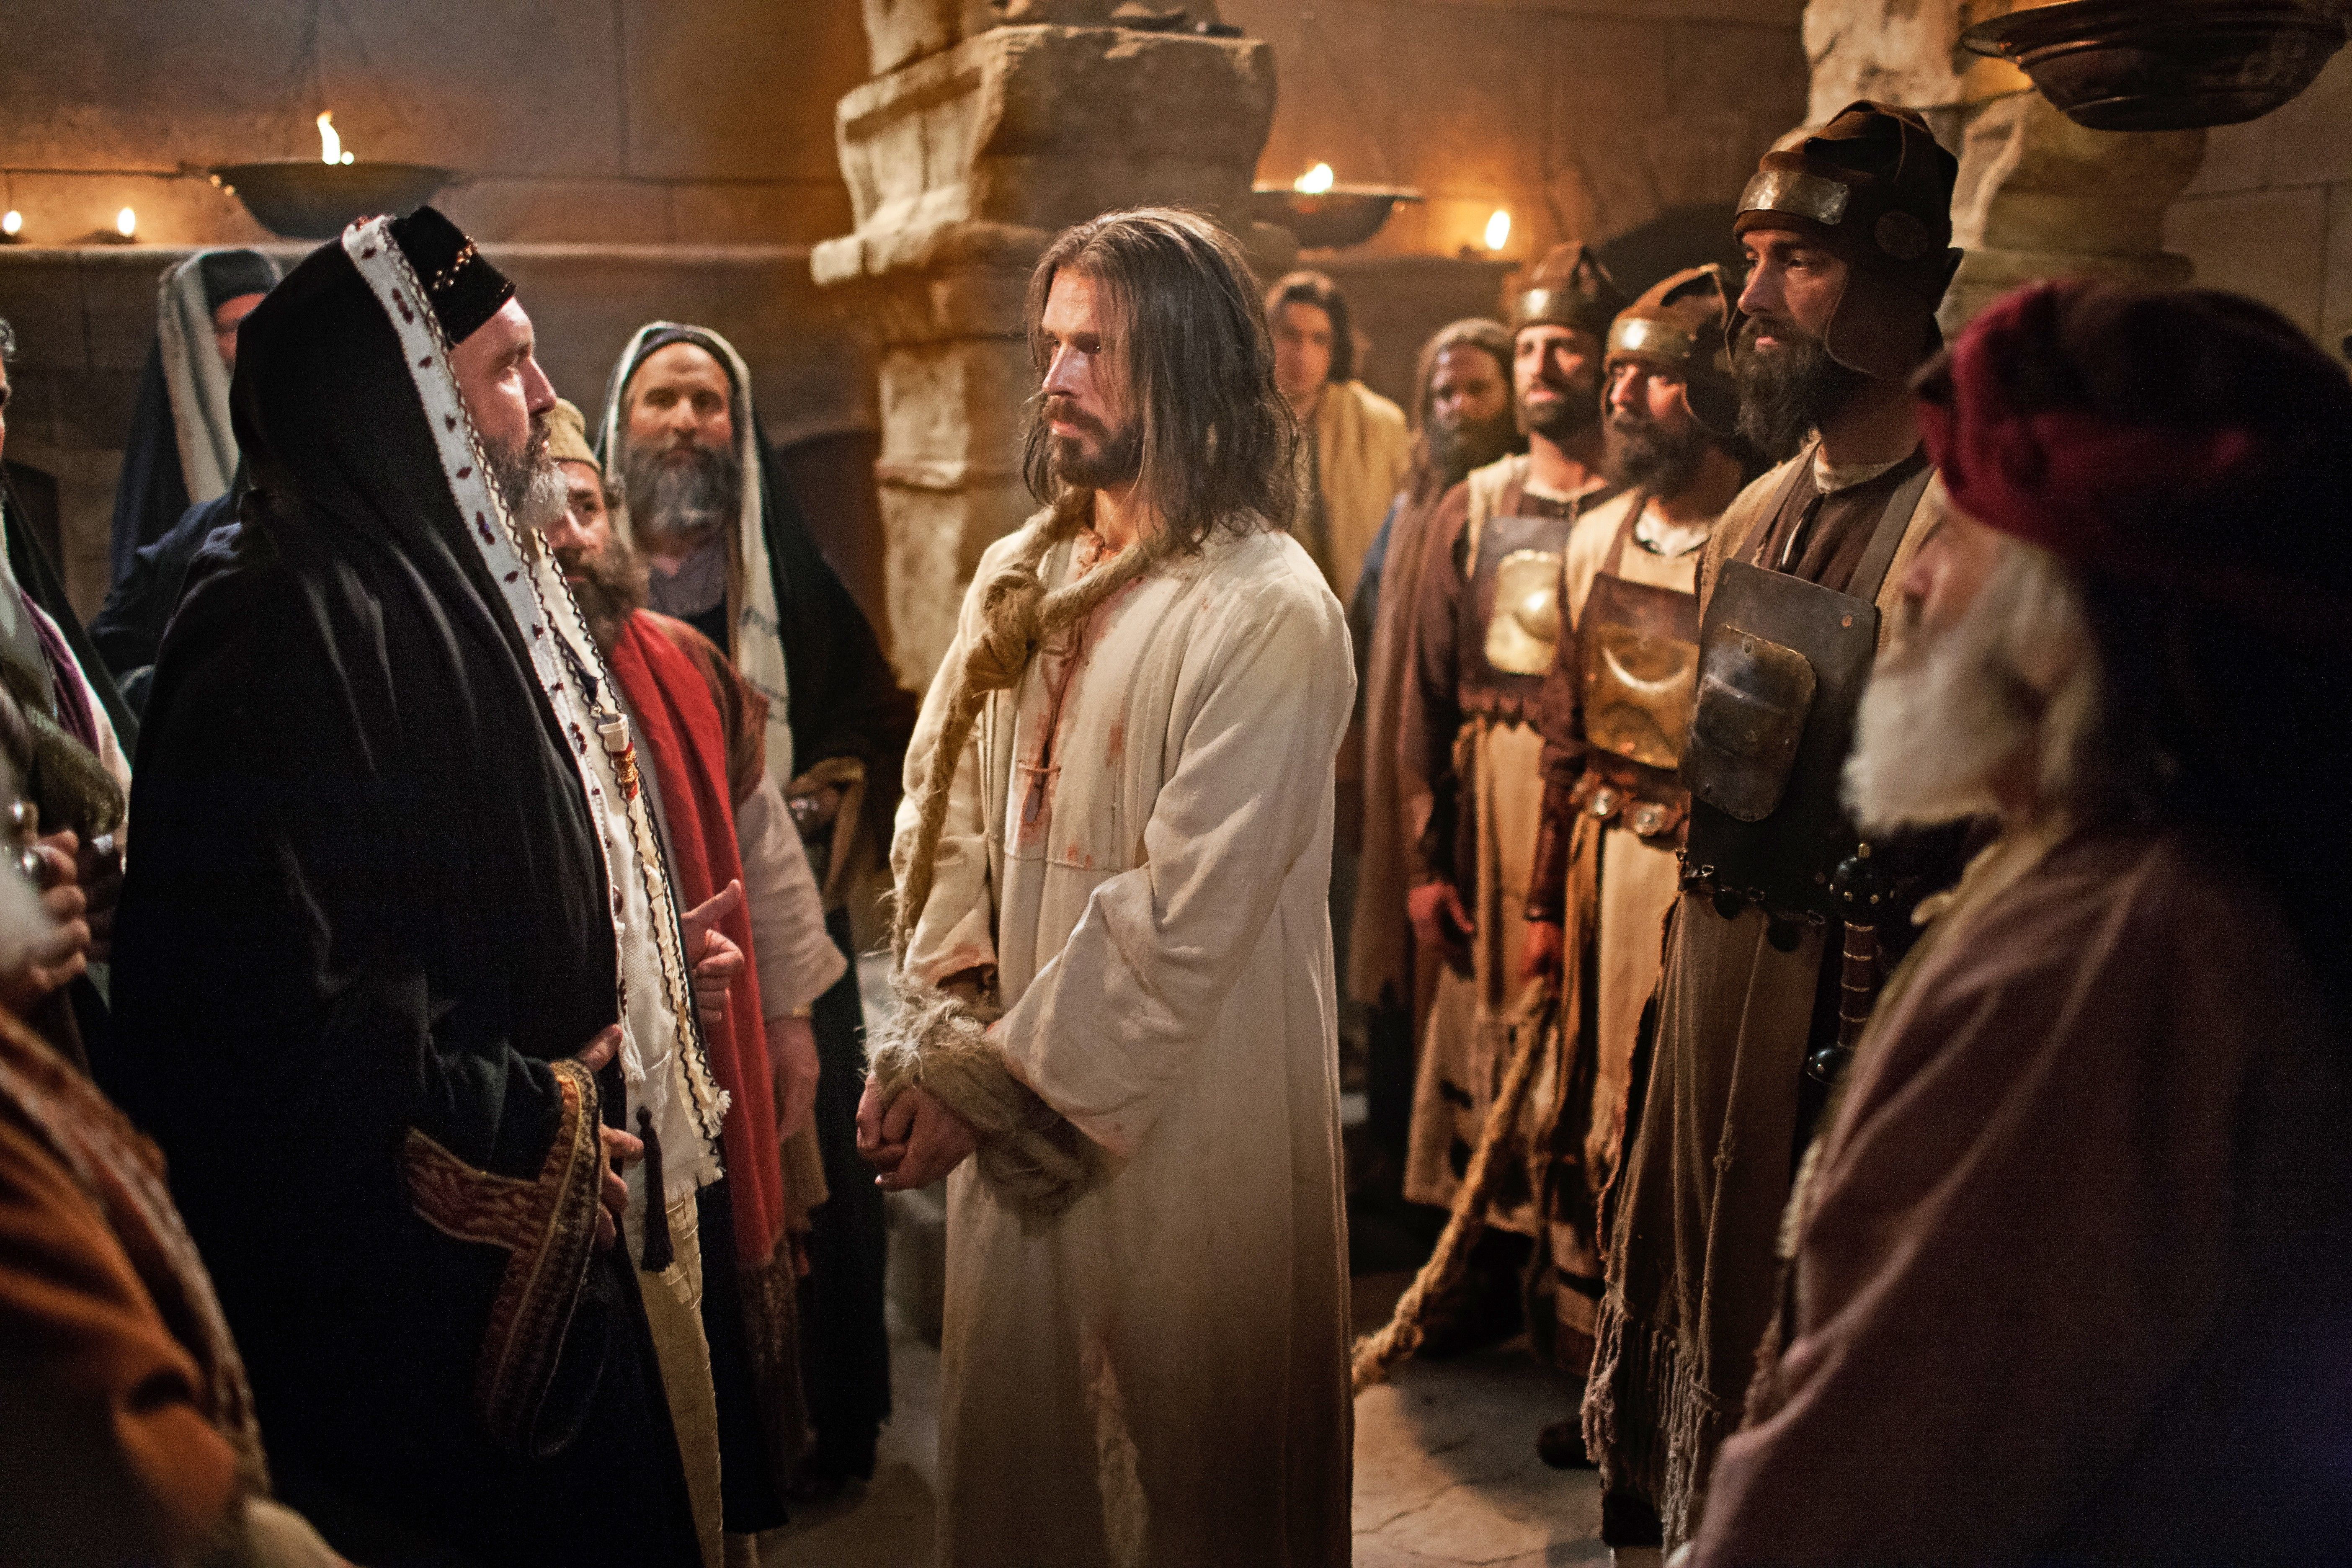 Jesus standing bound before Caiaphas and the Sanhedrin.